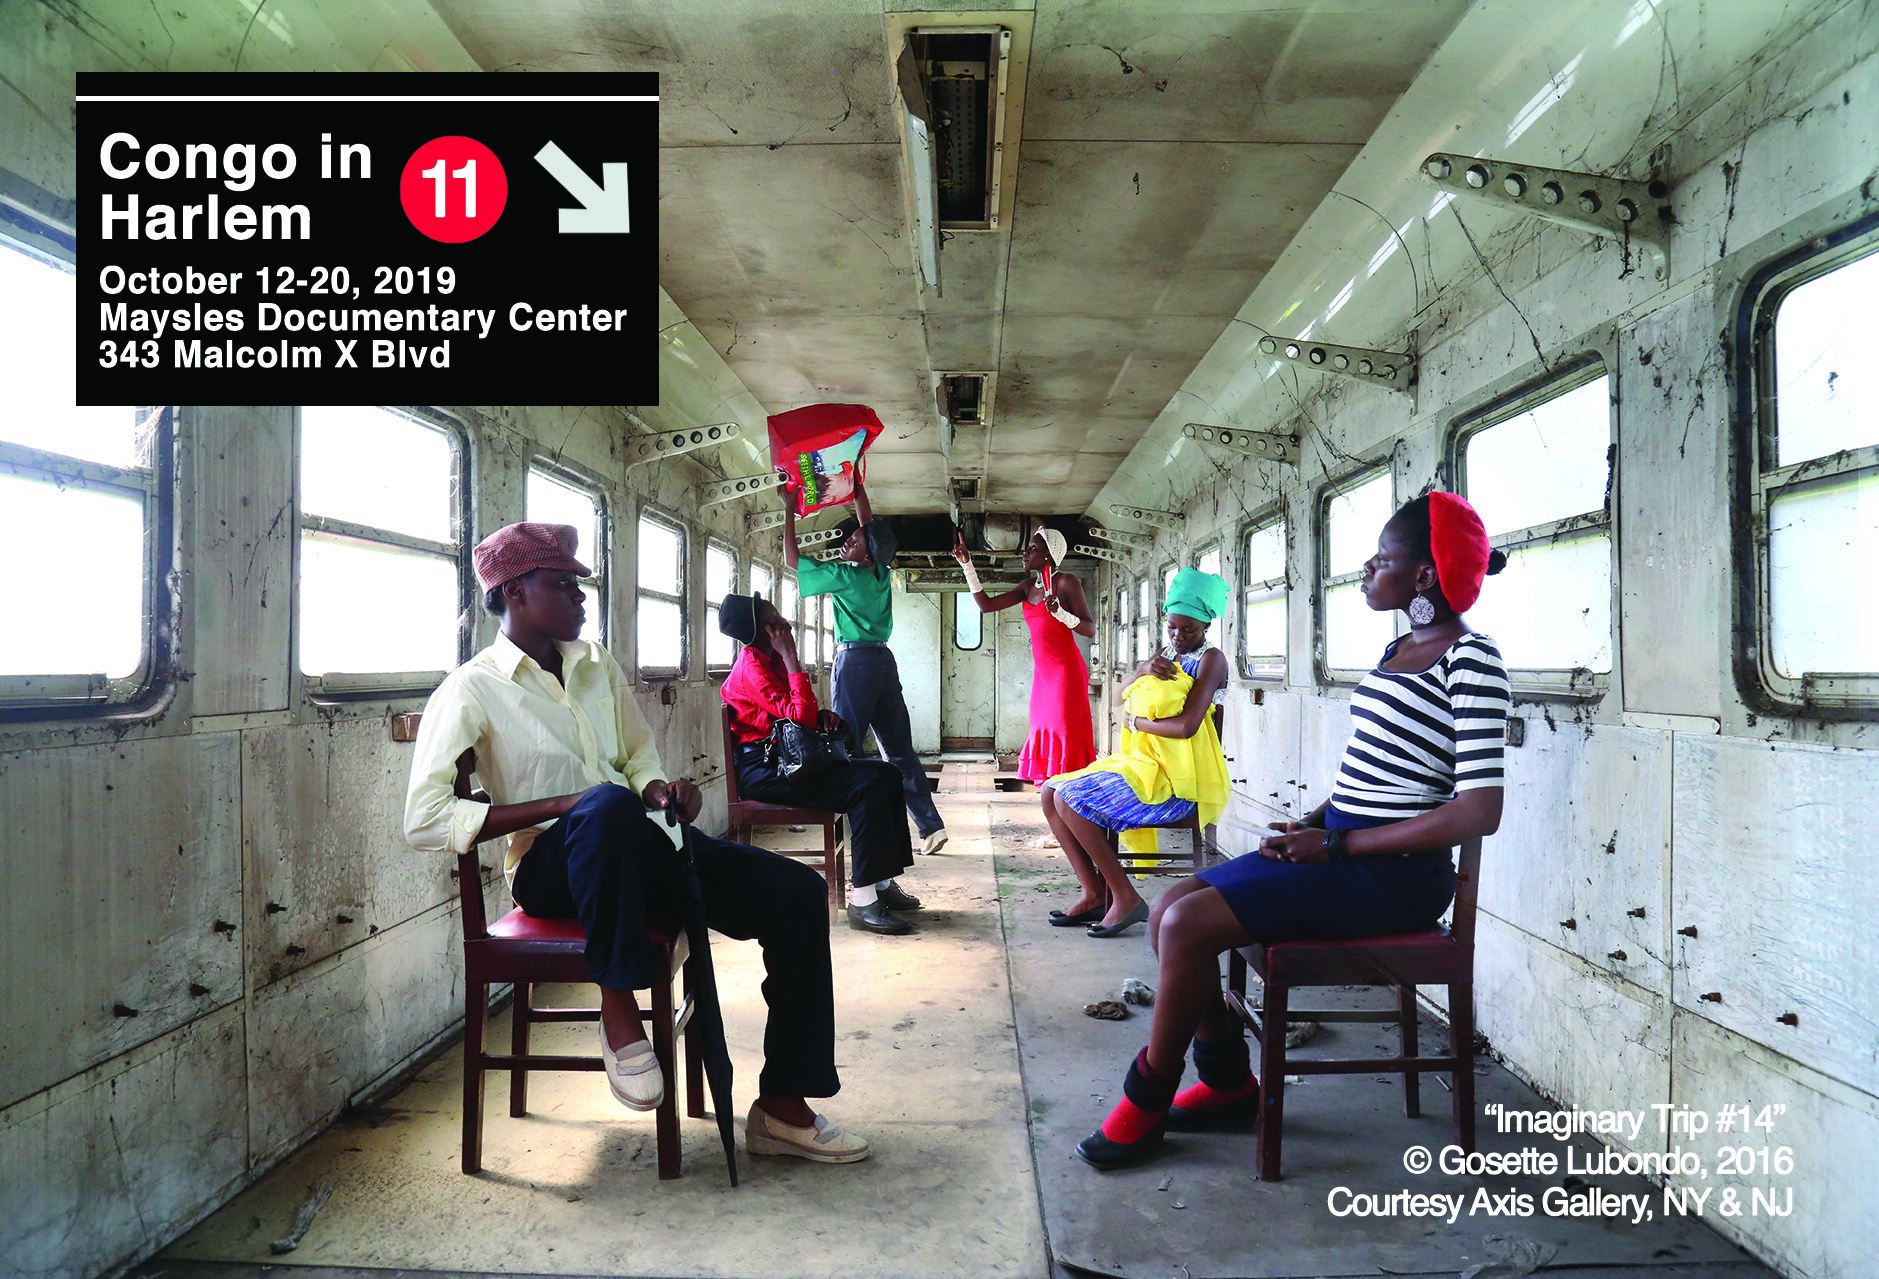 Congo in Harlem 11 - A showcase of films, exhibits, panel discussions and special events focused on the history, politics, and culture of the Democratic Republic of the Congo.October 12-20 , 2019